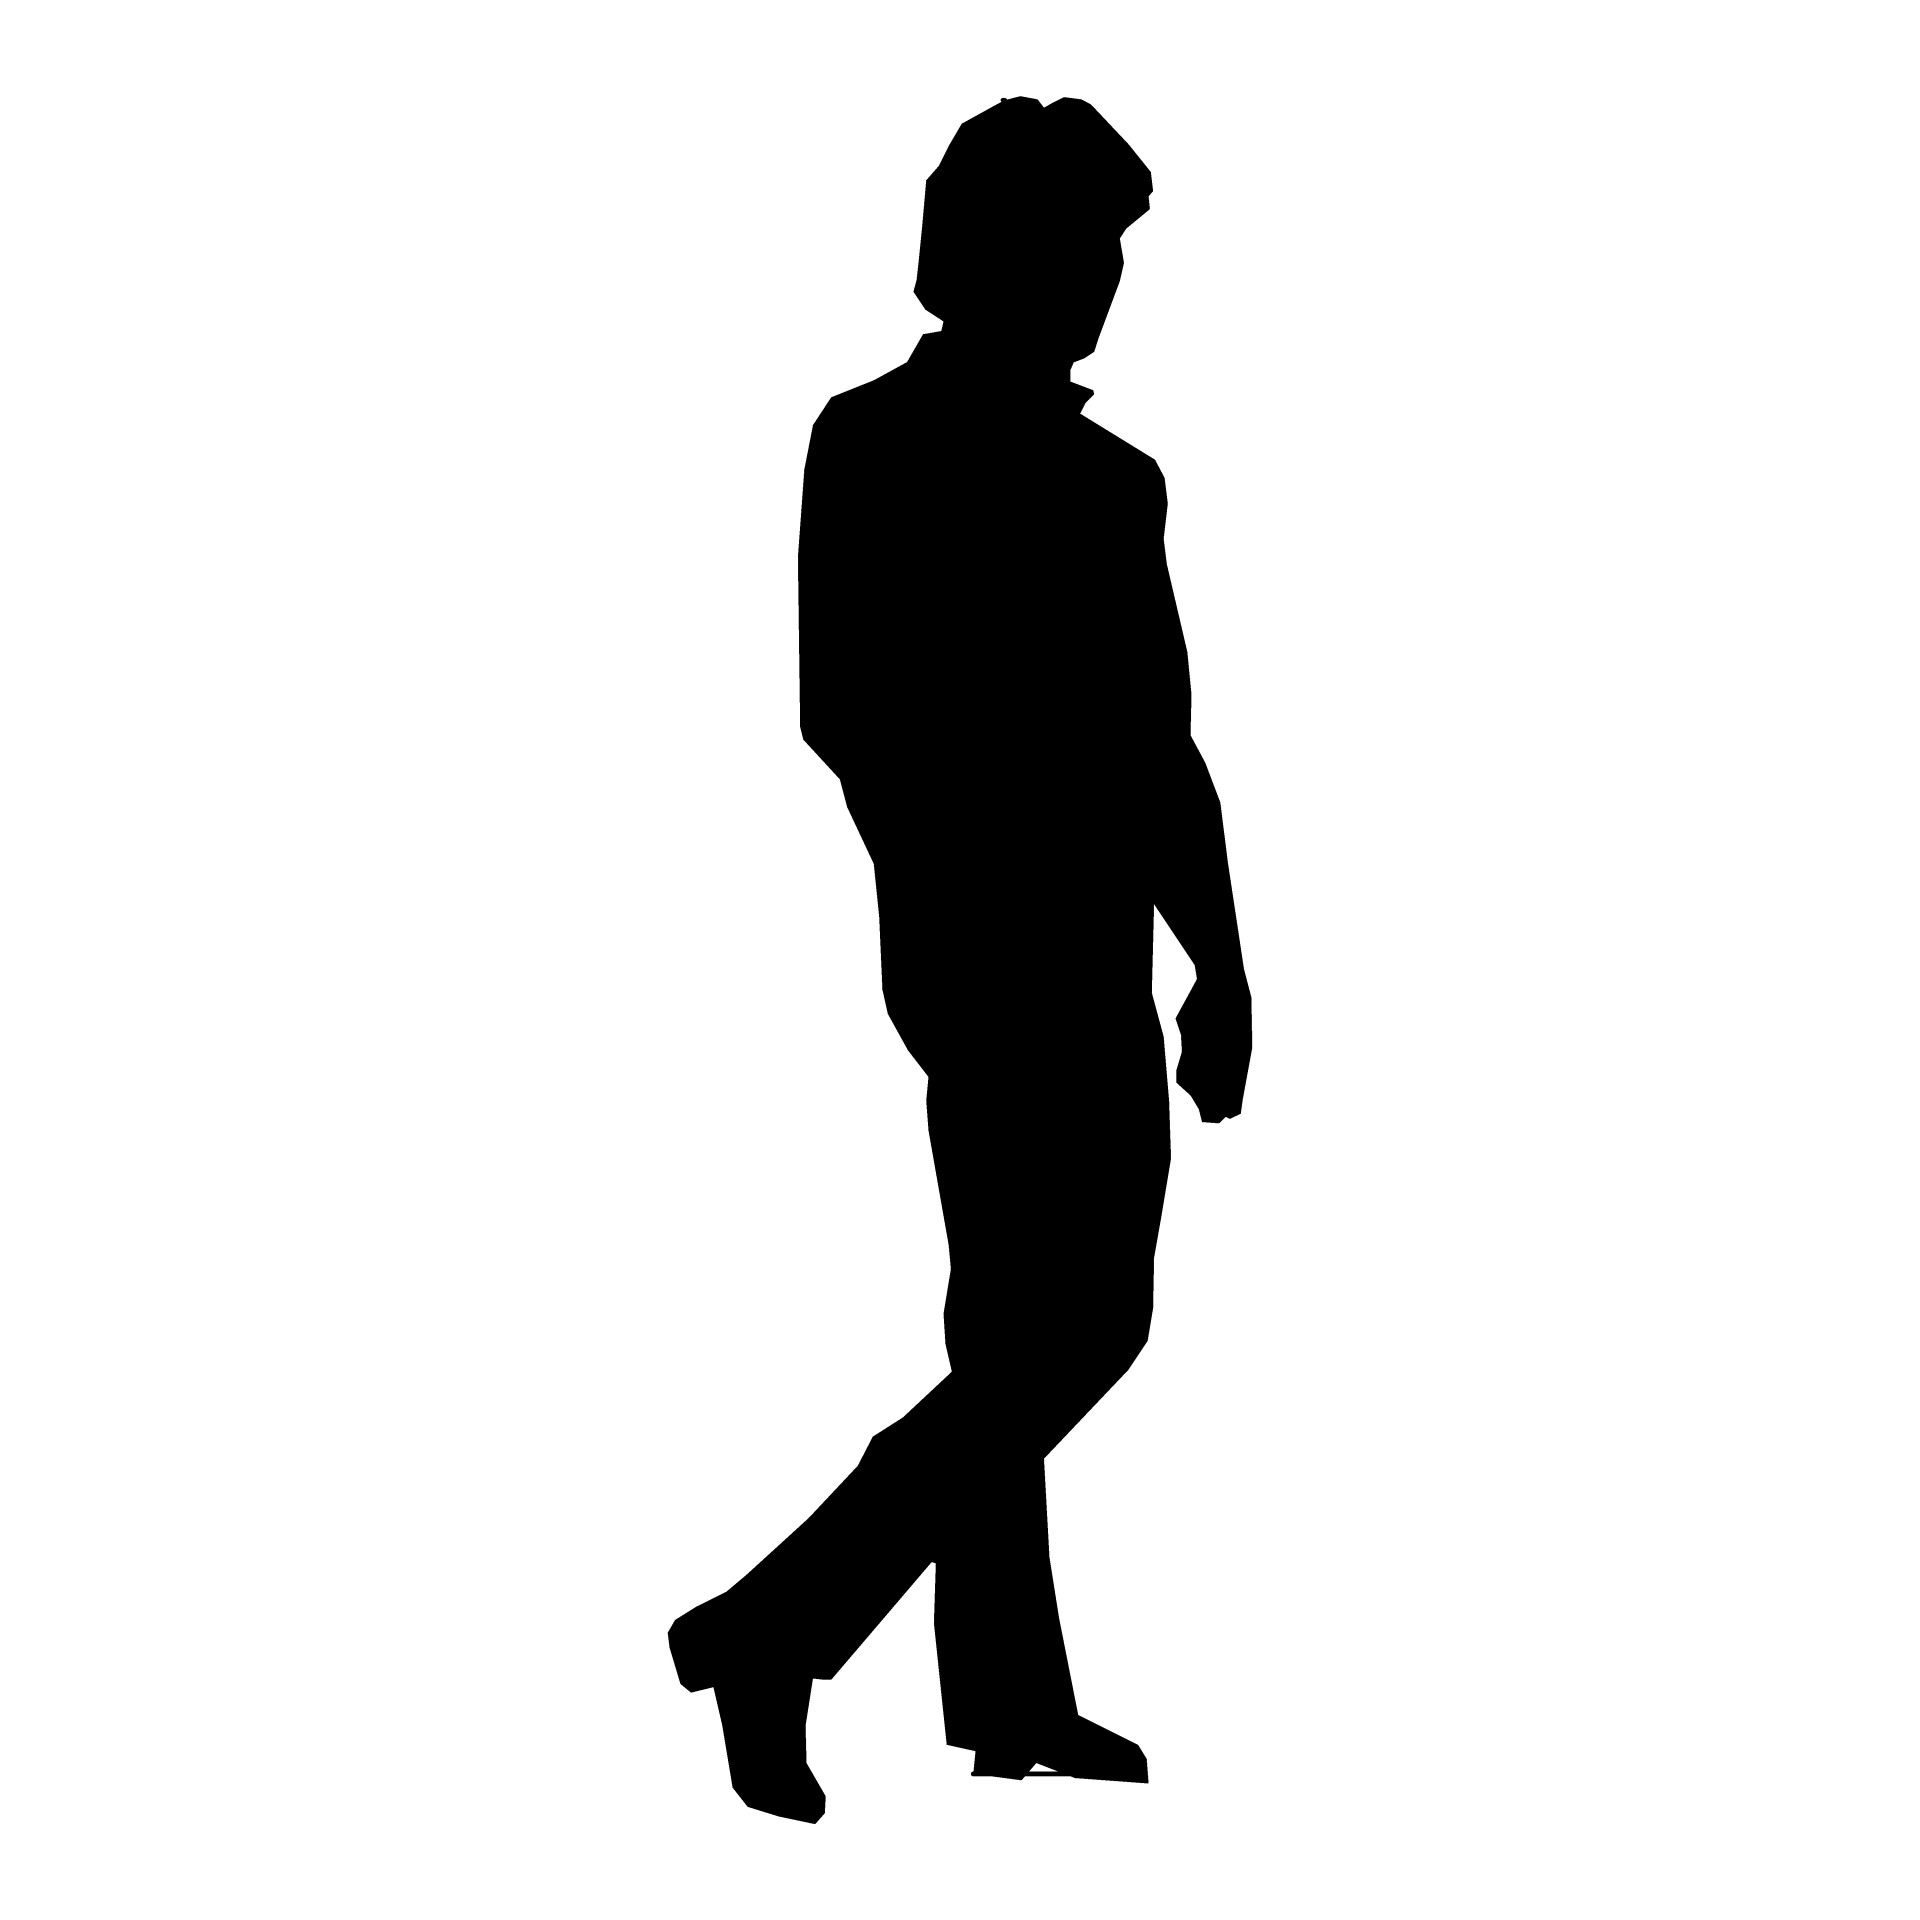 Man walking silhouette clipart clipart freeuse stock Silhouette Man Walking   C O A in 2019   Silhouette clip art ... clipart freeuse stock